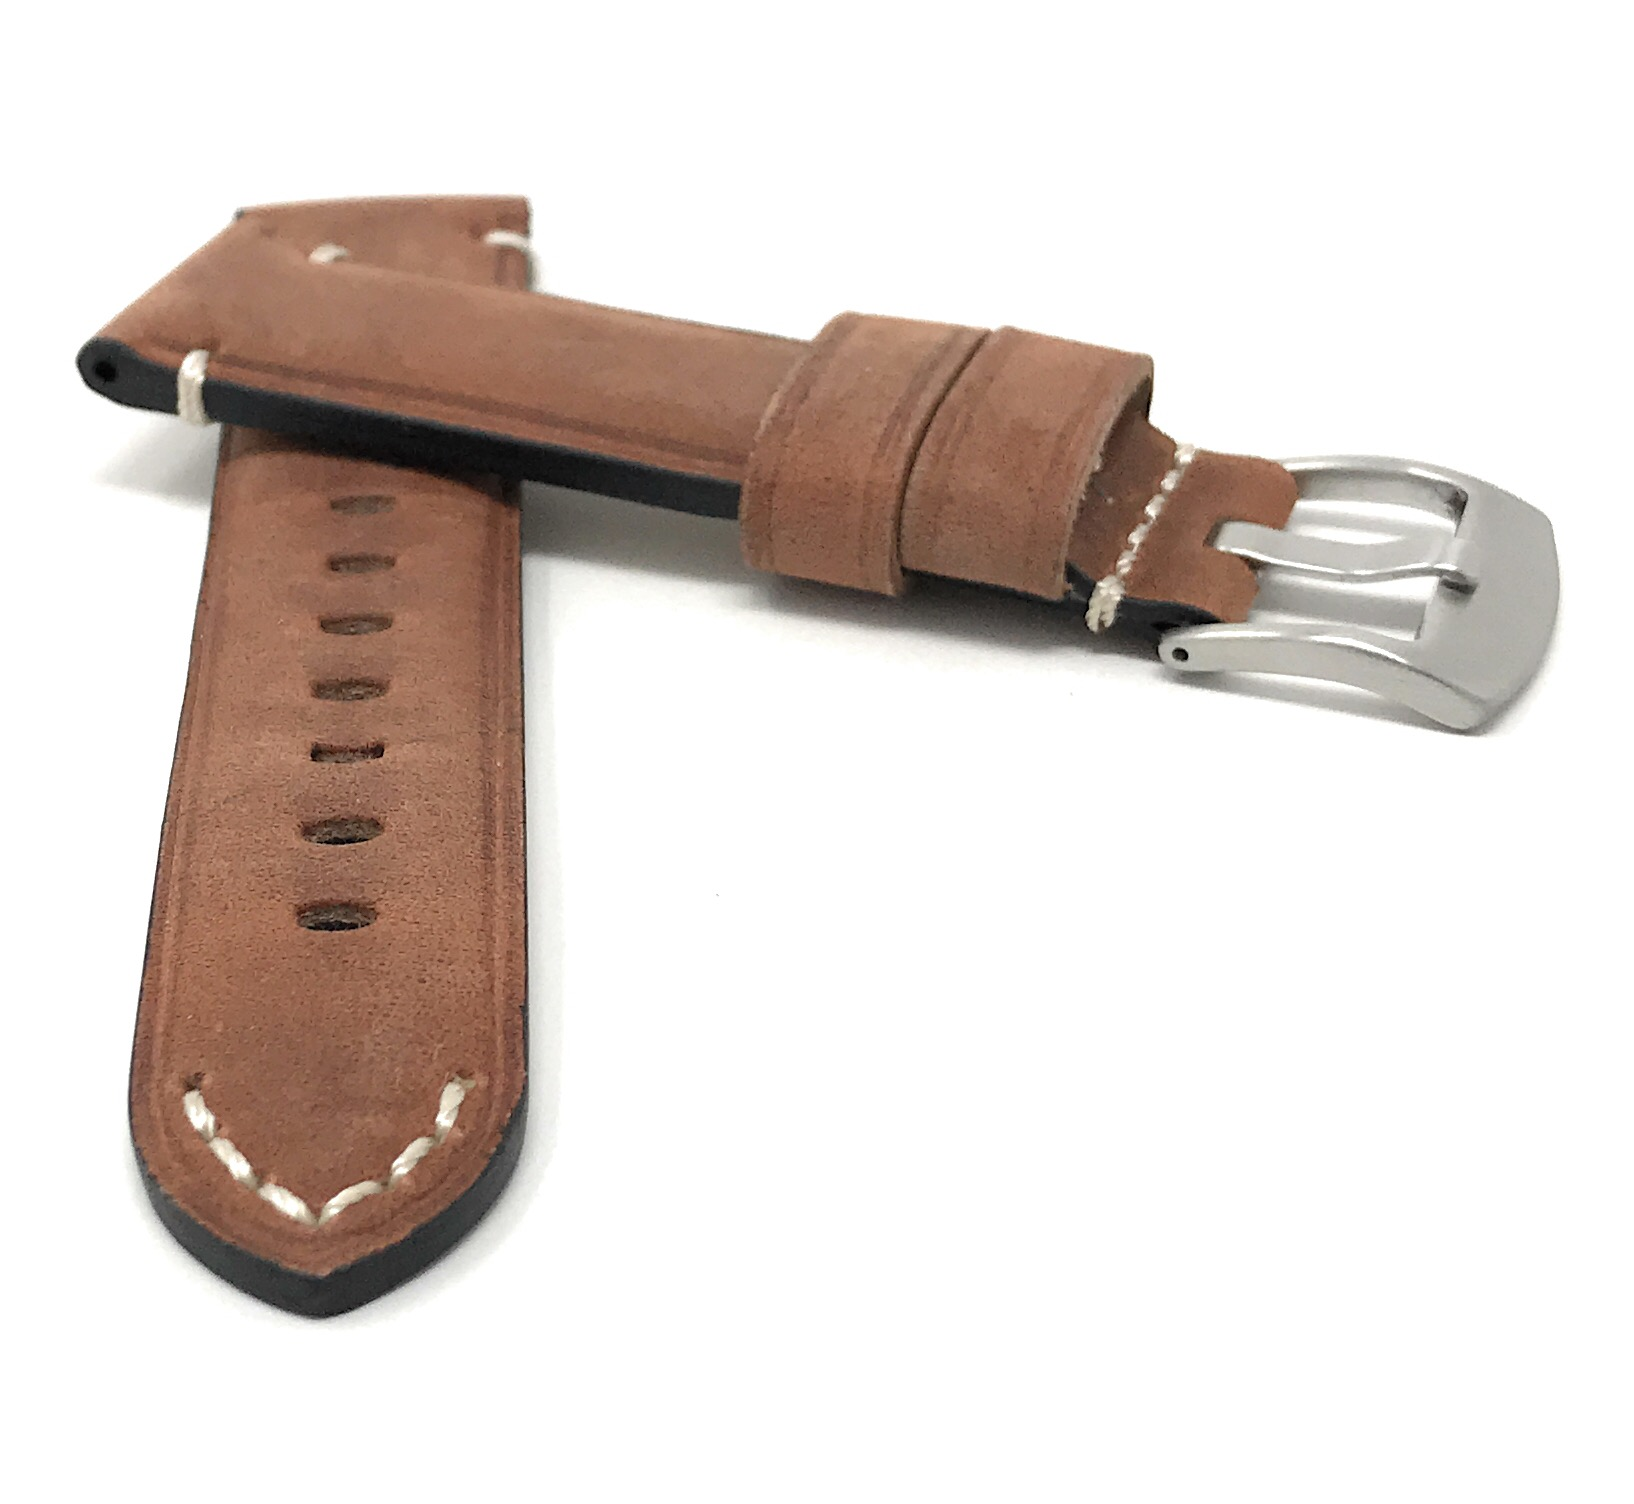 Bandini-Distressed-Leather-Watch-Band-Strap-Black-Brown-Tan-20mm-22mm-24mm thumbnail 30